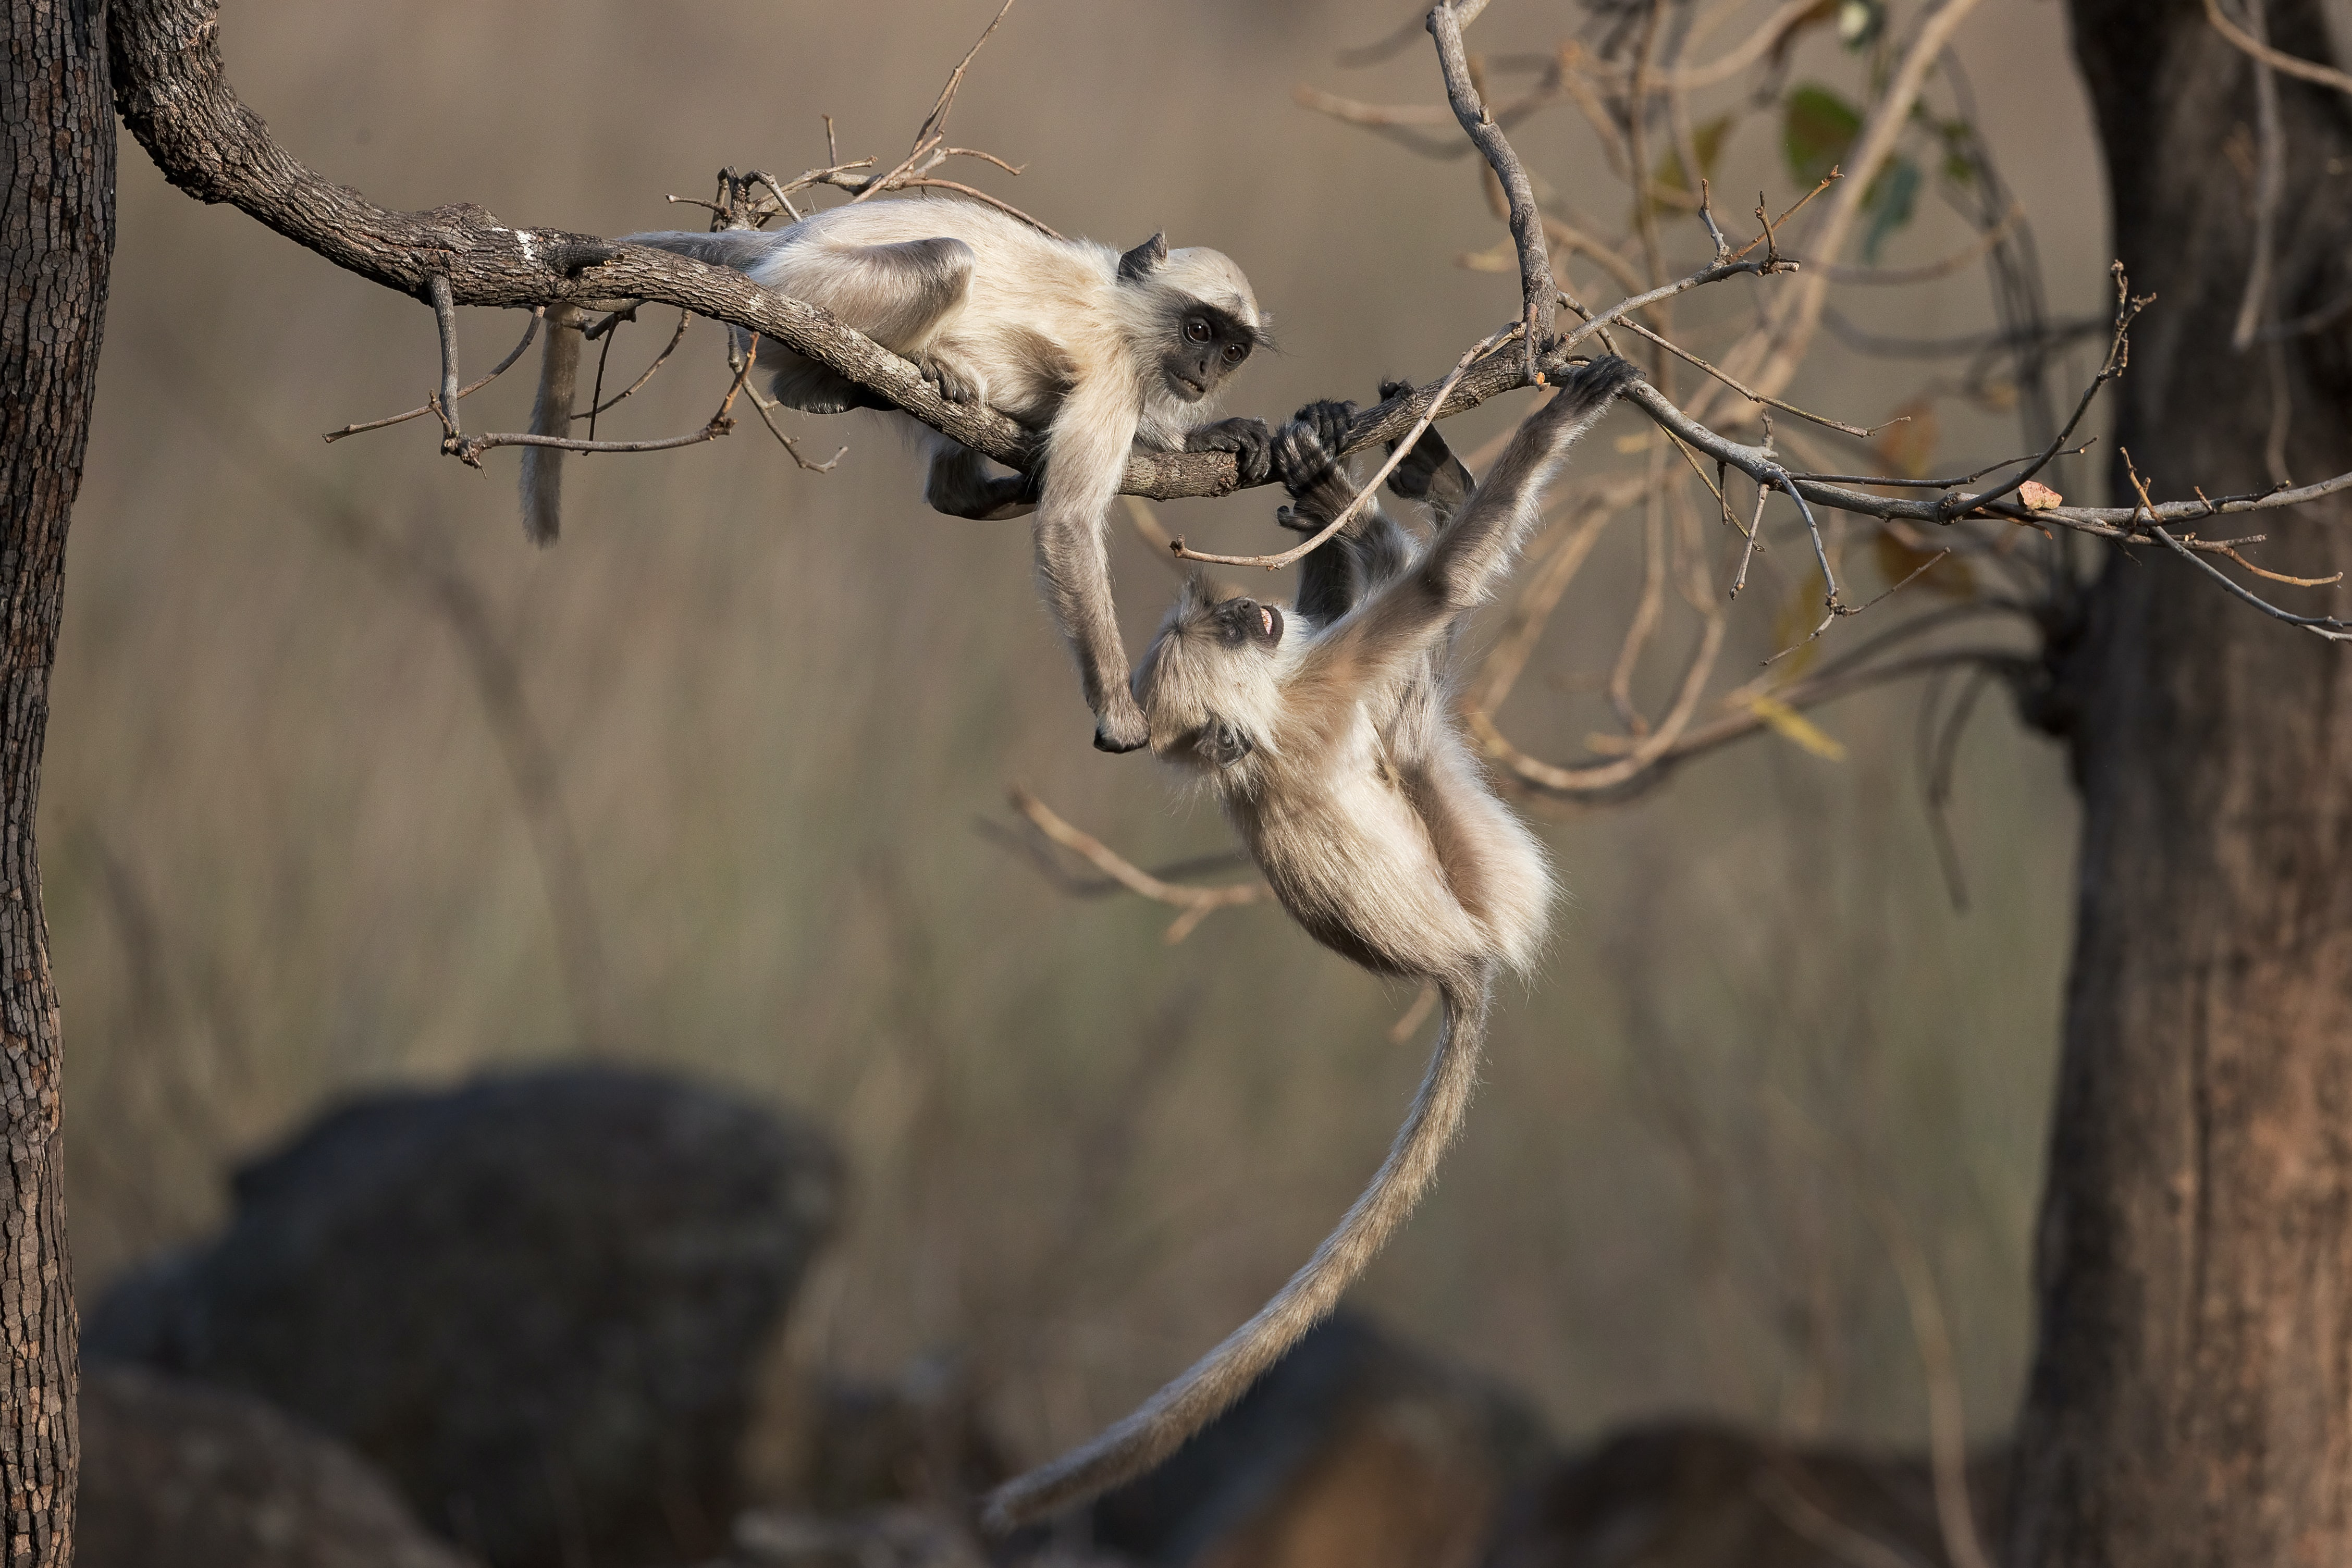 two monkey hanging on tree branches